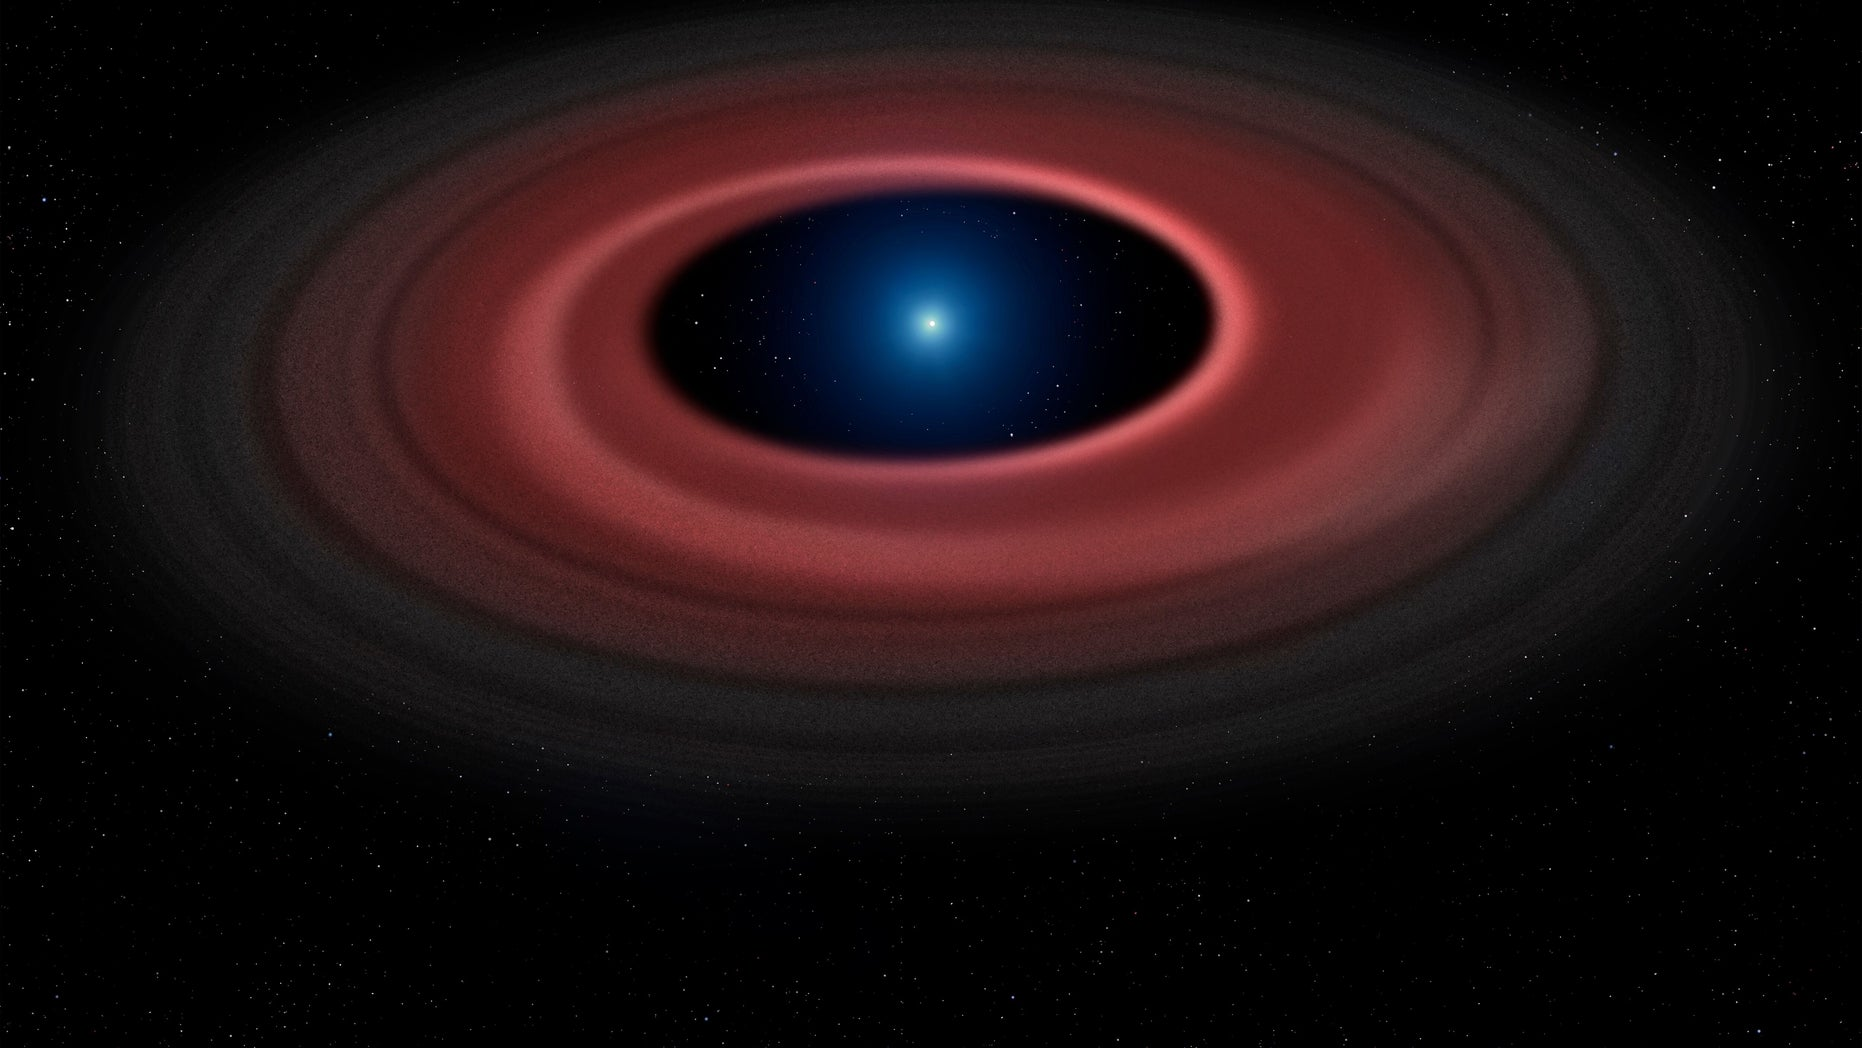 An asteroid torn apart by the strong gravity of a white dwarf has formed a ring of dust particles and debris orbiting the Earth-sized burnt out stellar core. Gas produced by collisions within the disc is detected in observations obtained over 12 years with ESO's Very Large Telescope, and reveal a narrow glowing arc. (Mark Garlick and University of Warwick/ESO)